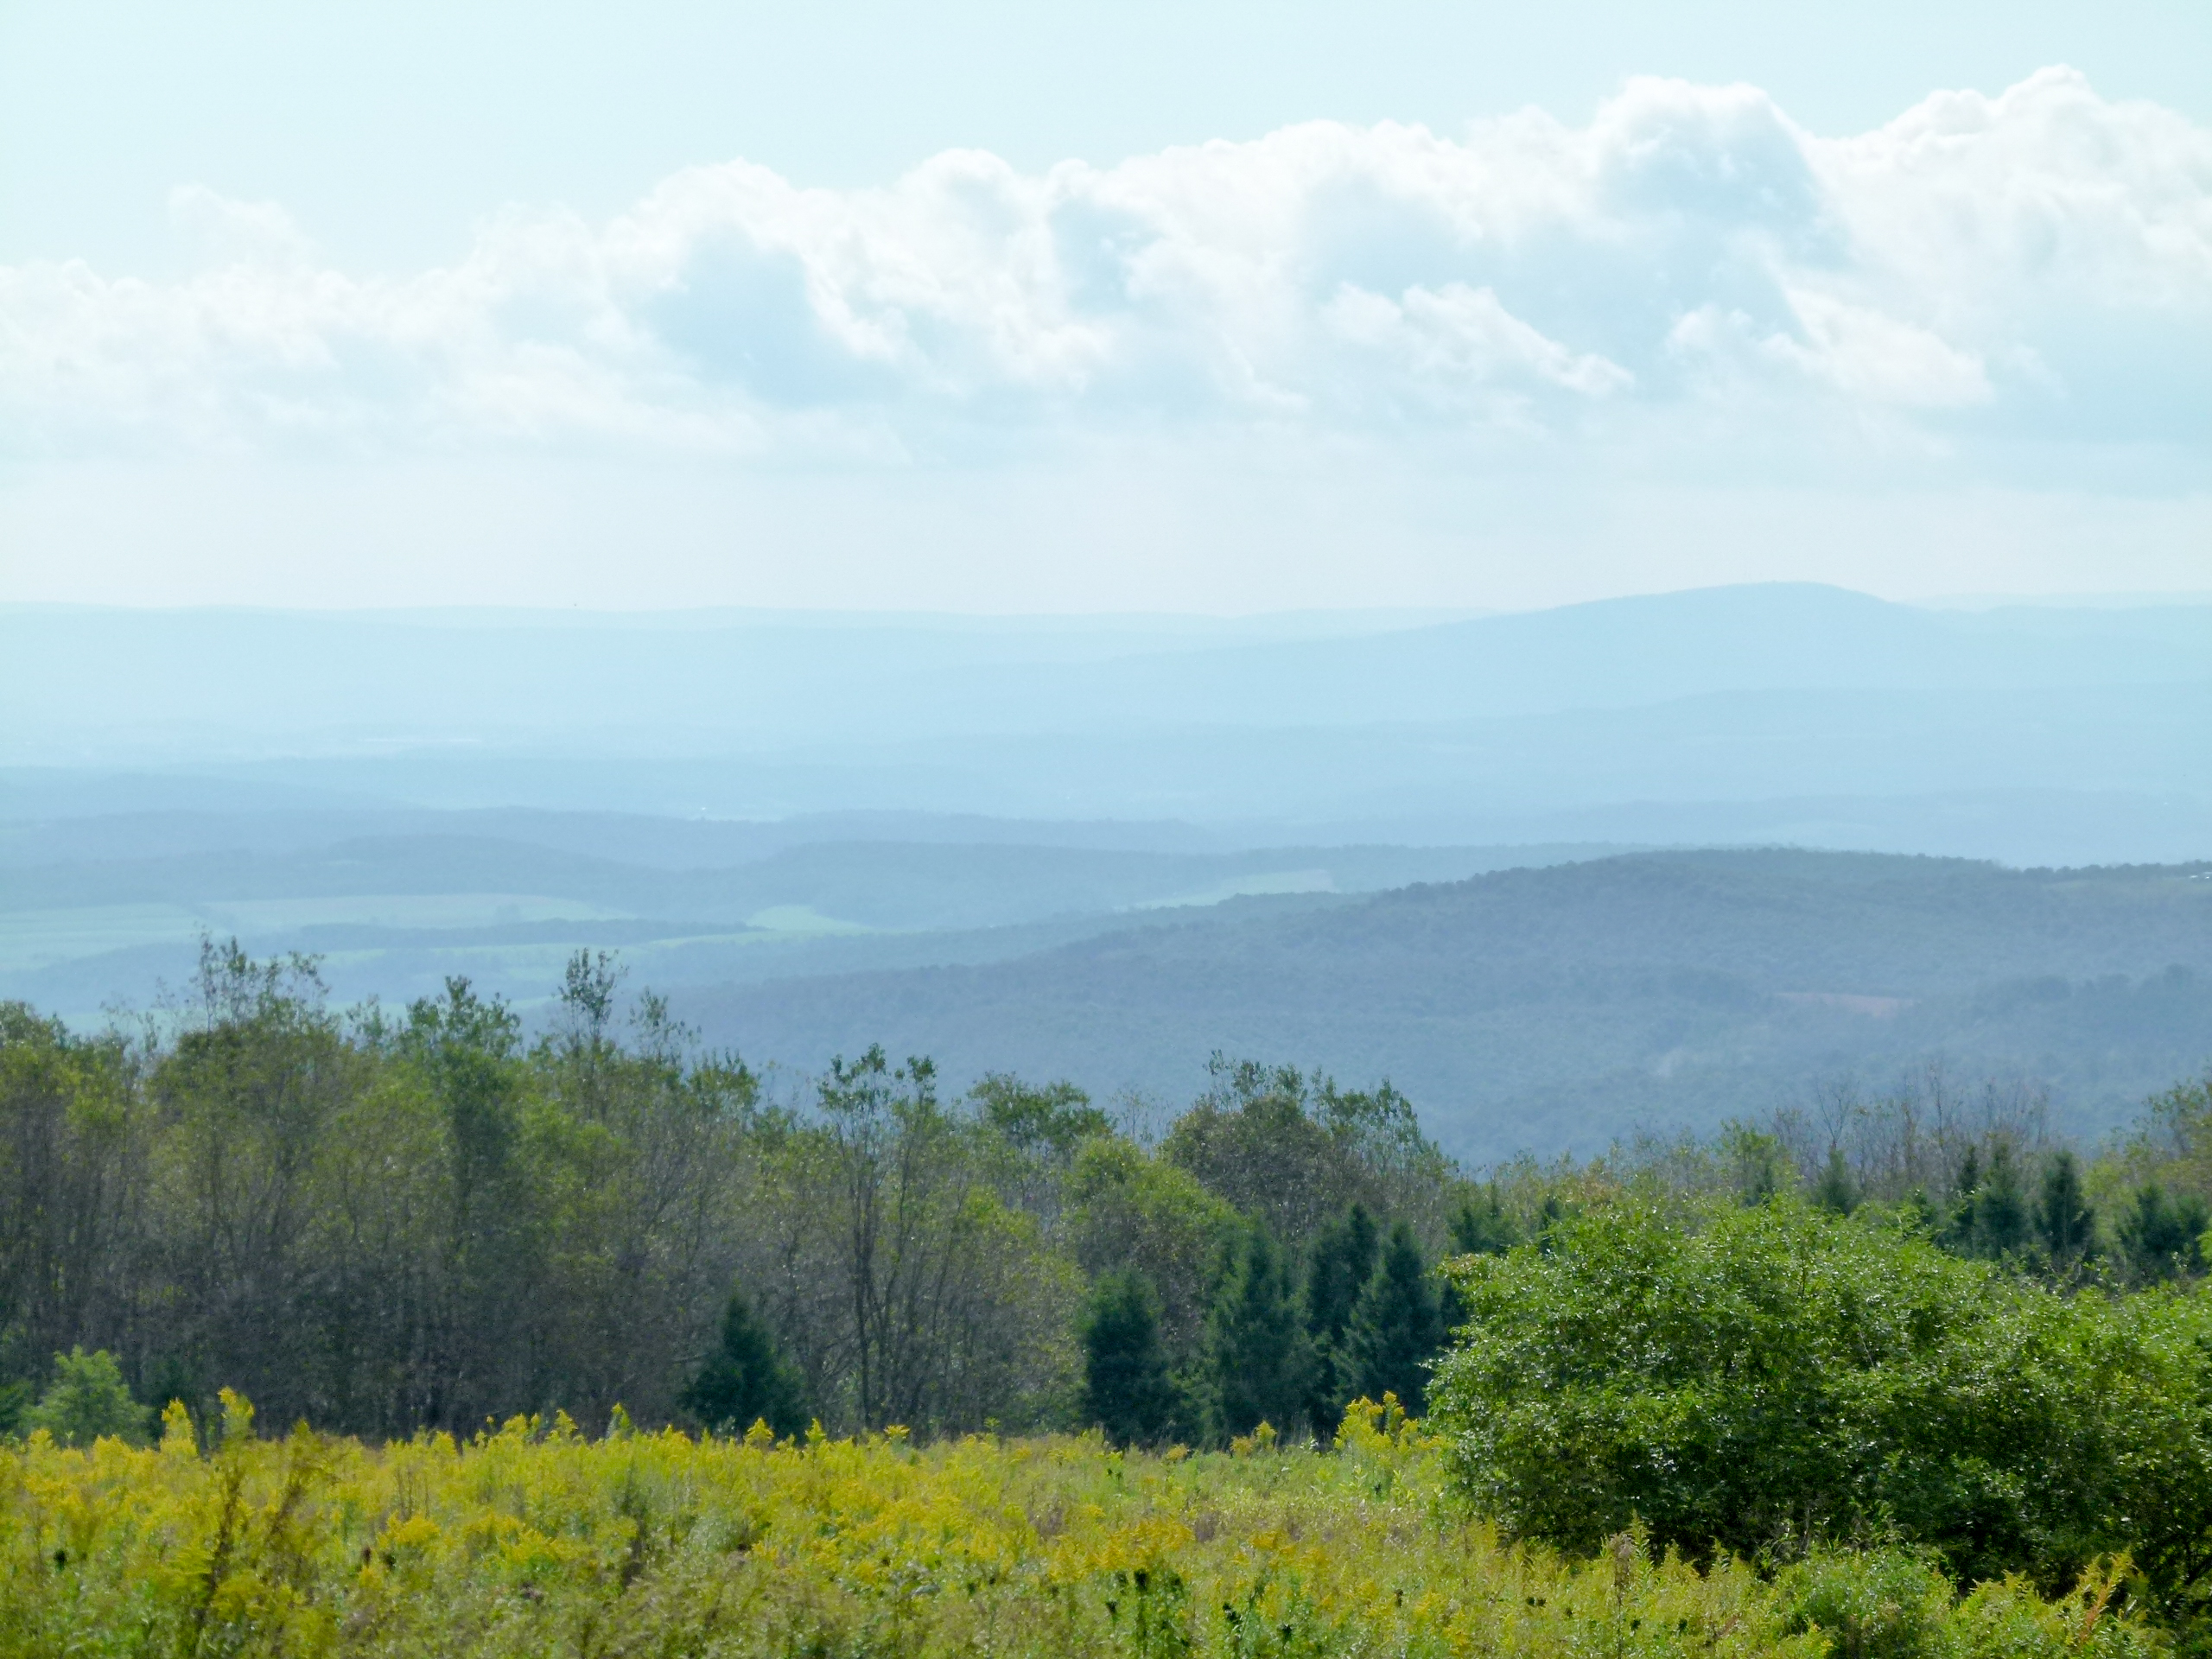 View from near the top of Blue Knob Mountain.